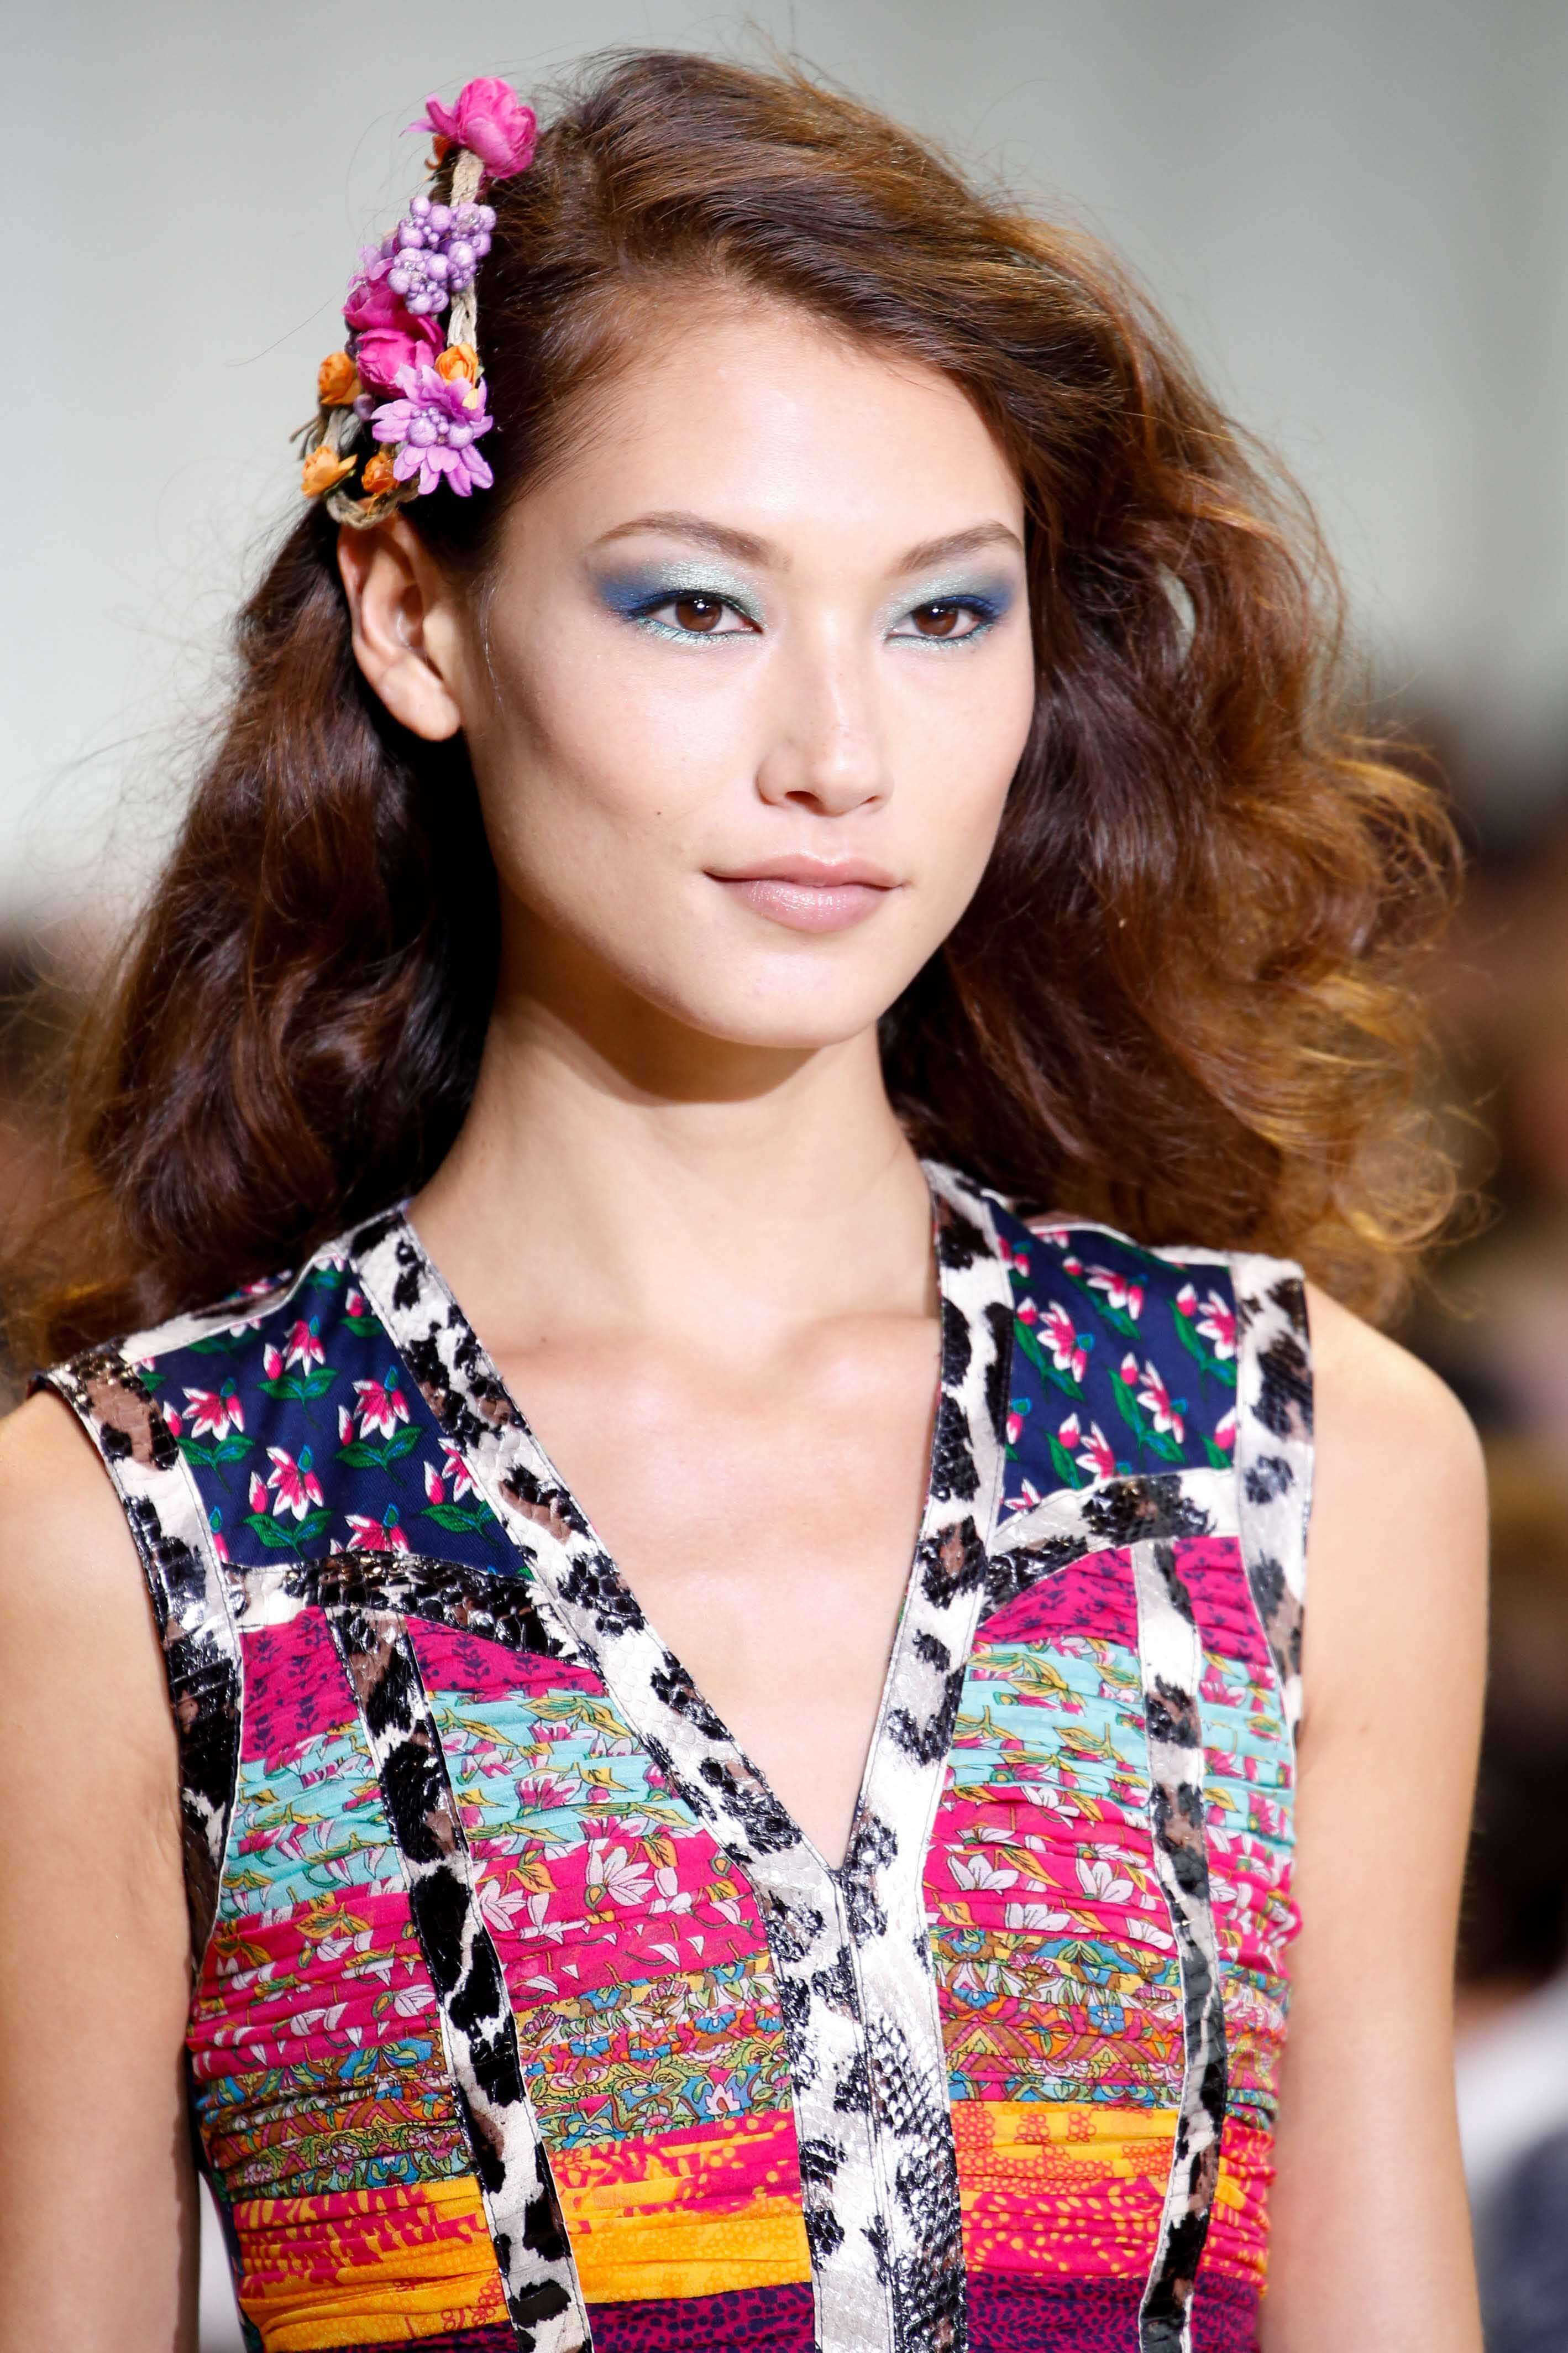 Asian hairstyles: Asian woman with golden caramel brown curly hair with floral hair accessory wearing a patterned dress.